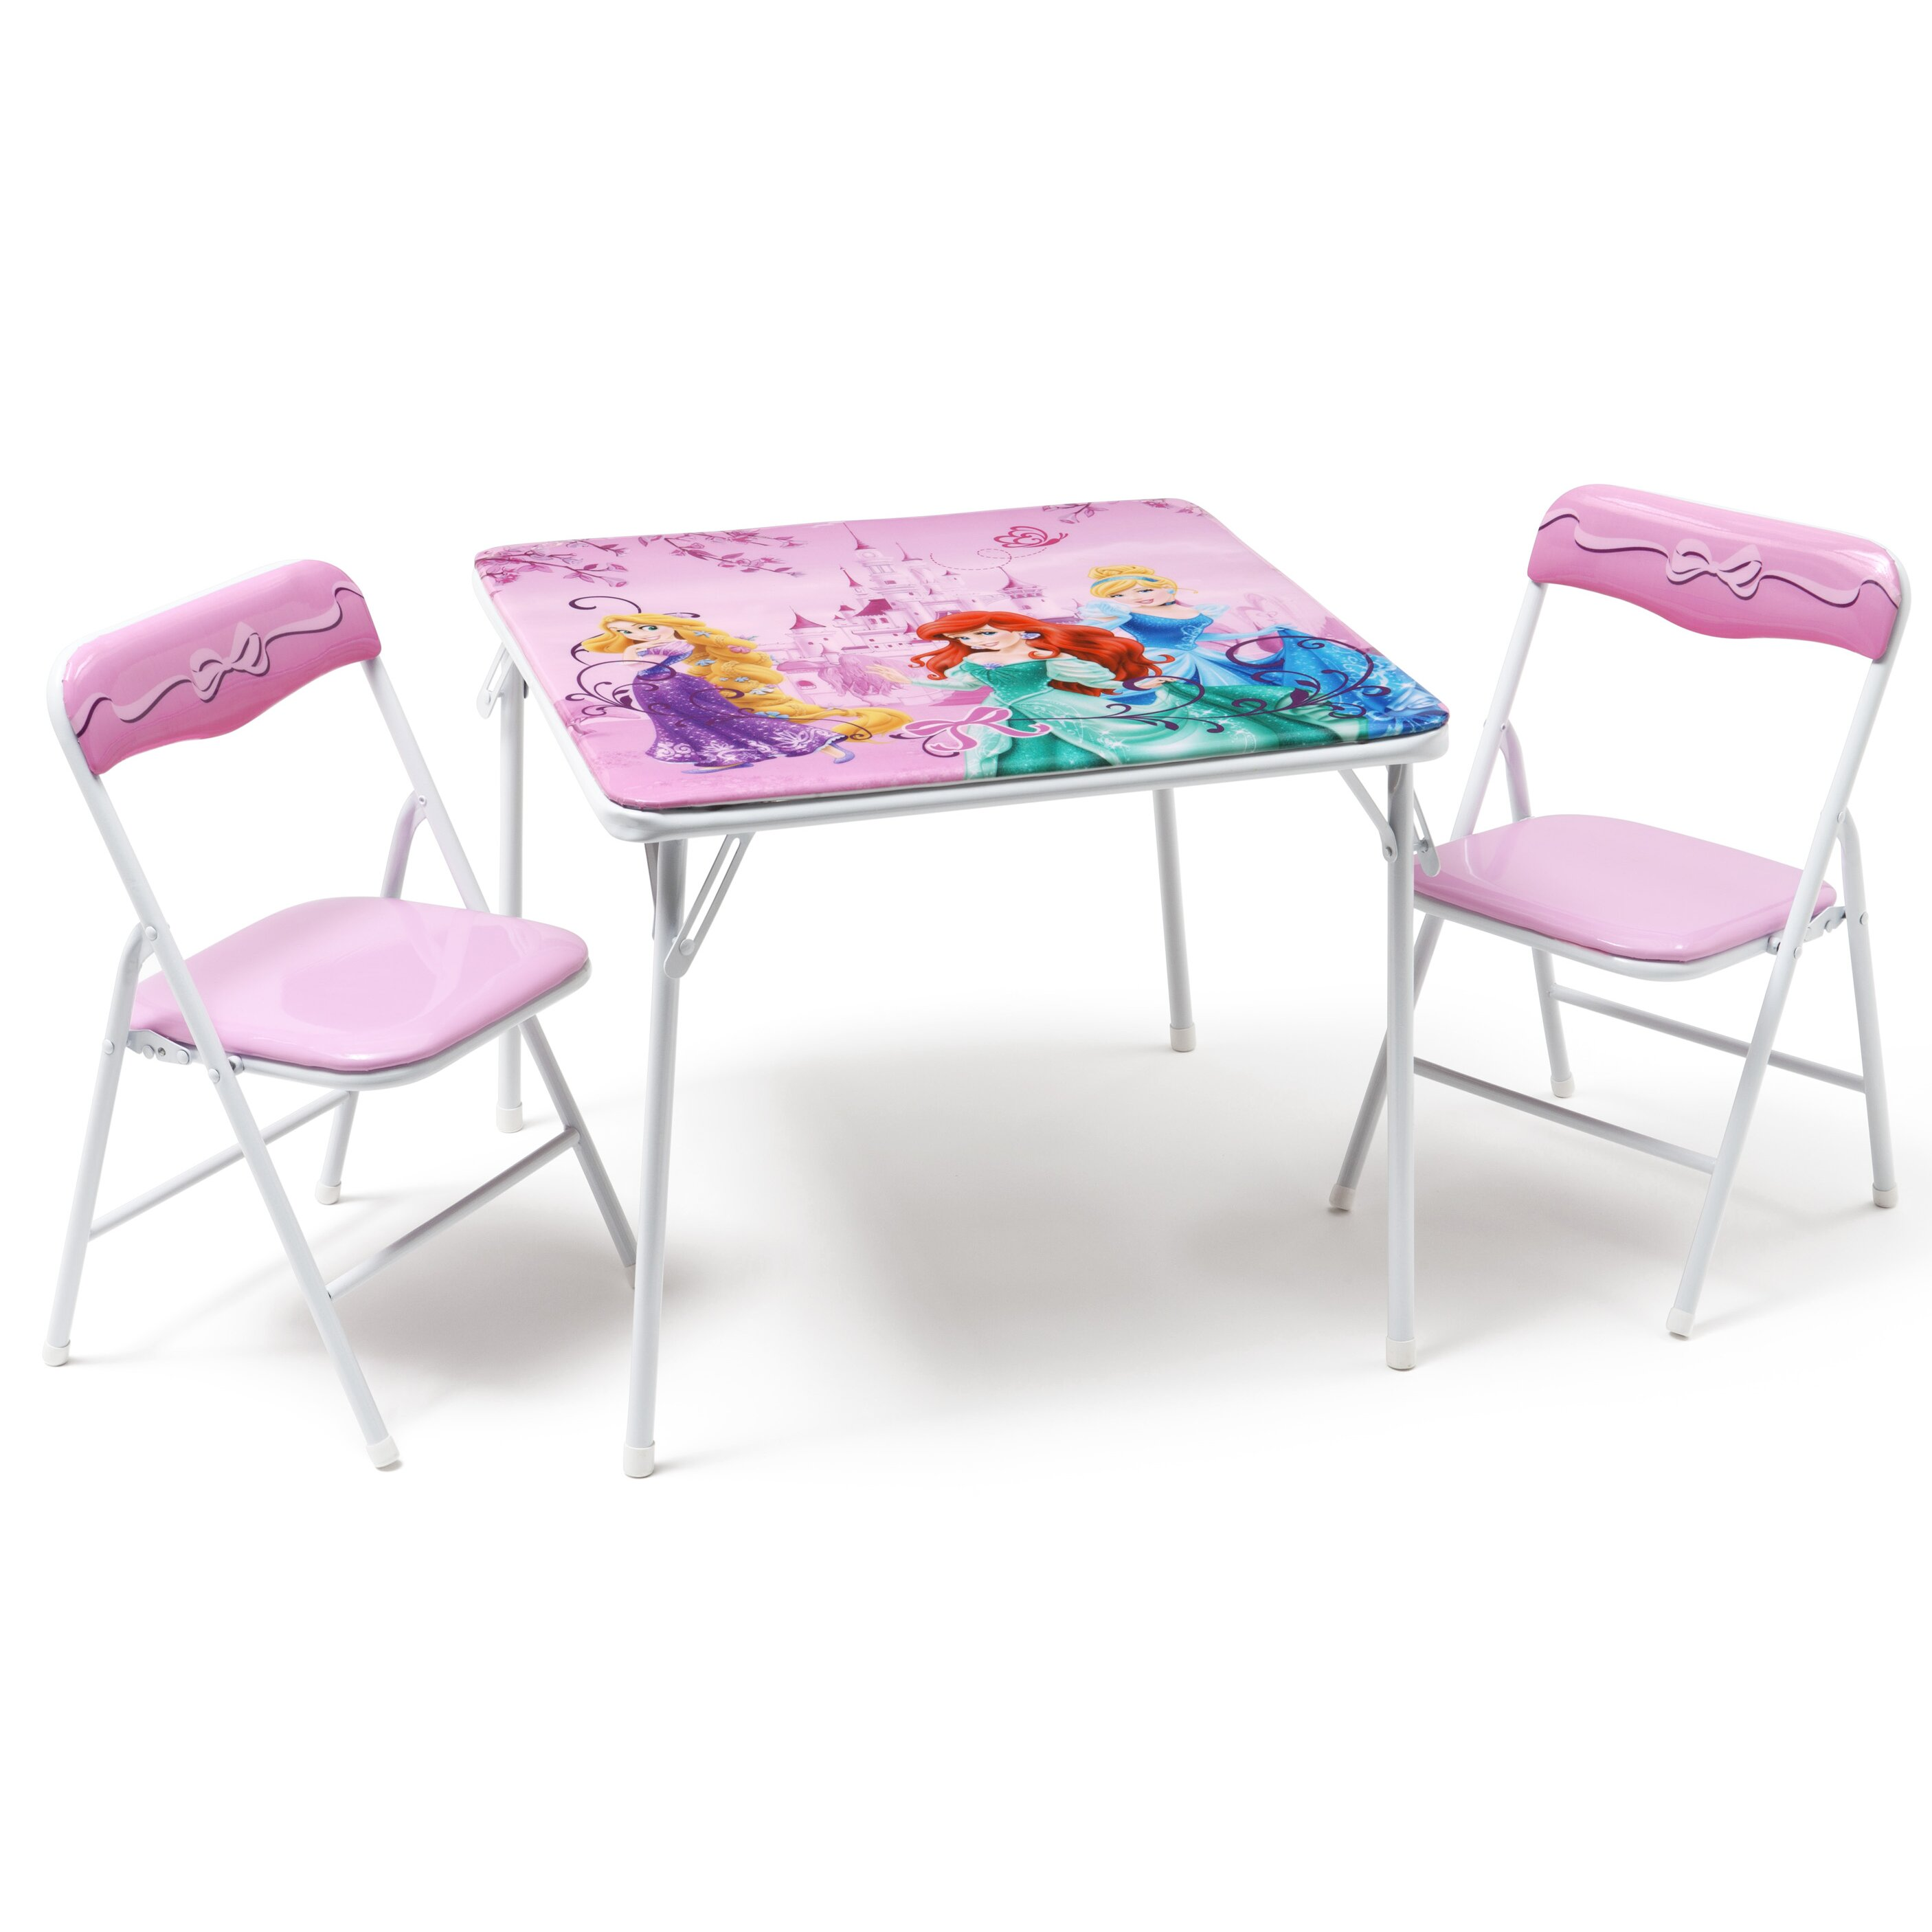 DeltaChildren Princess Folding Children 3 Piece Square Table and Chair Set